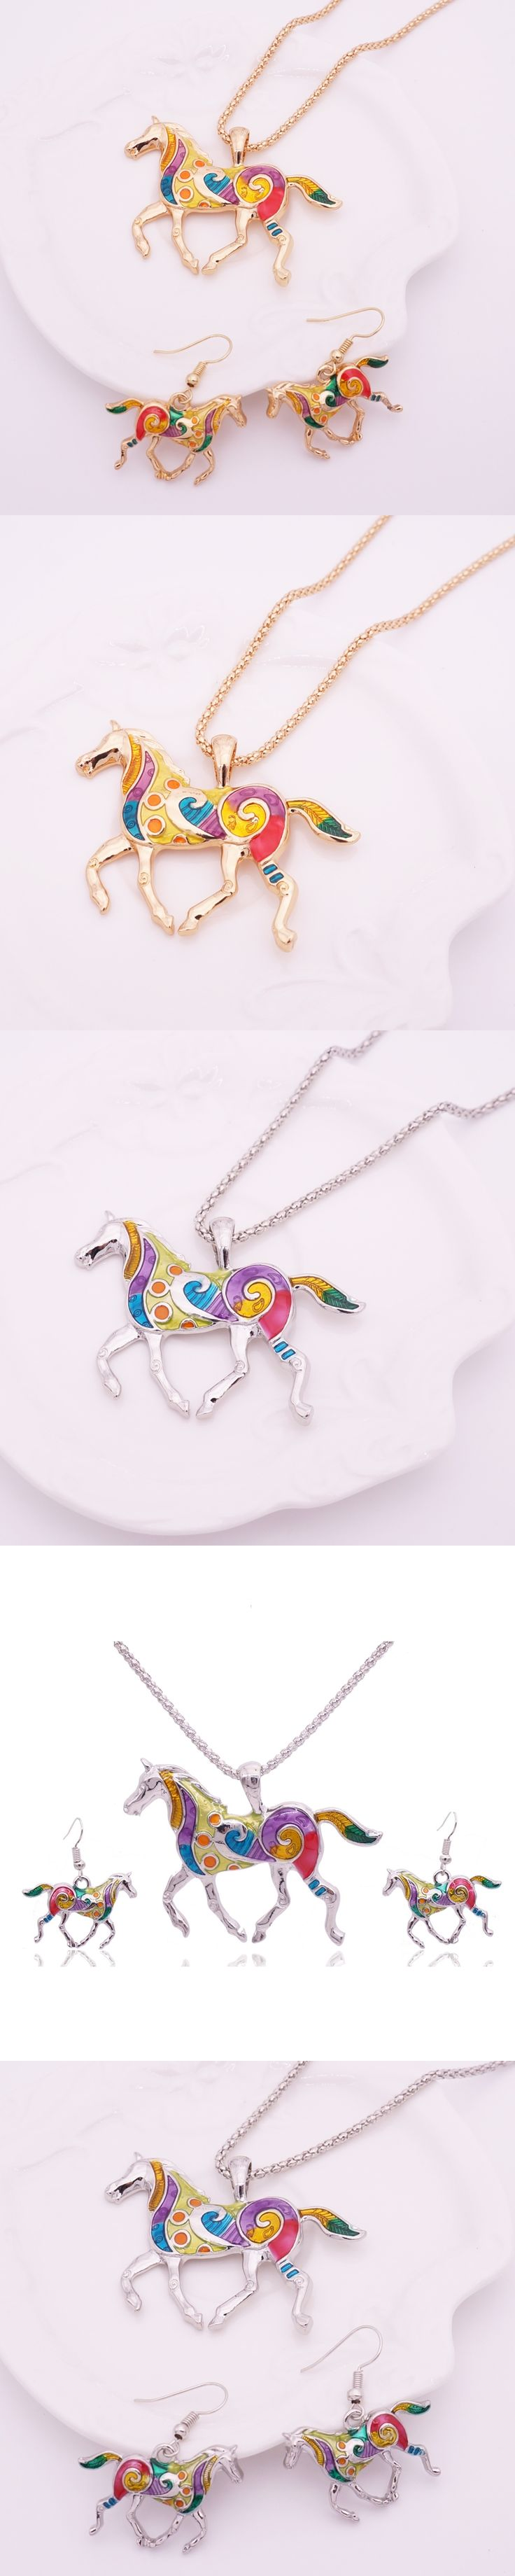 2016 Summer Enamel Horse Gold Jewelry Sets For Women Animal Horse Necklace Earring Set Turkish Fashion Jewelry